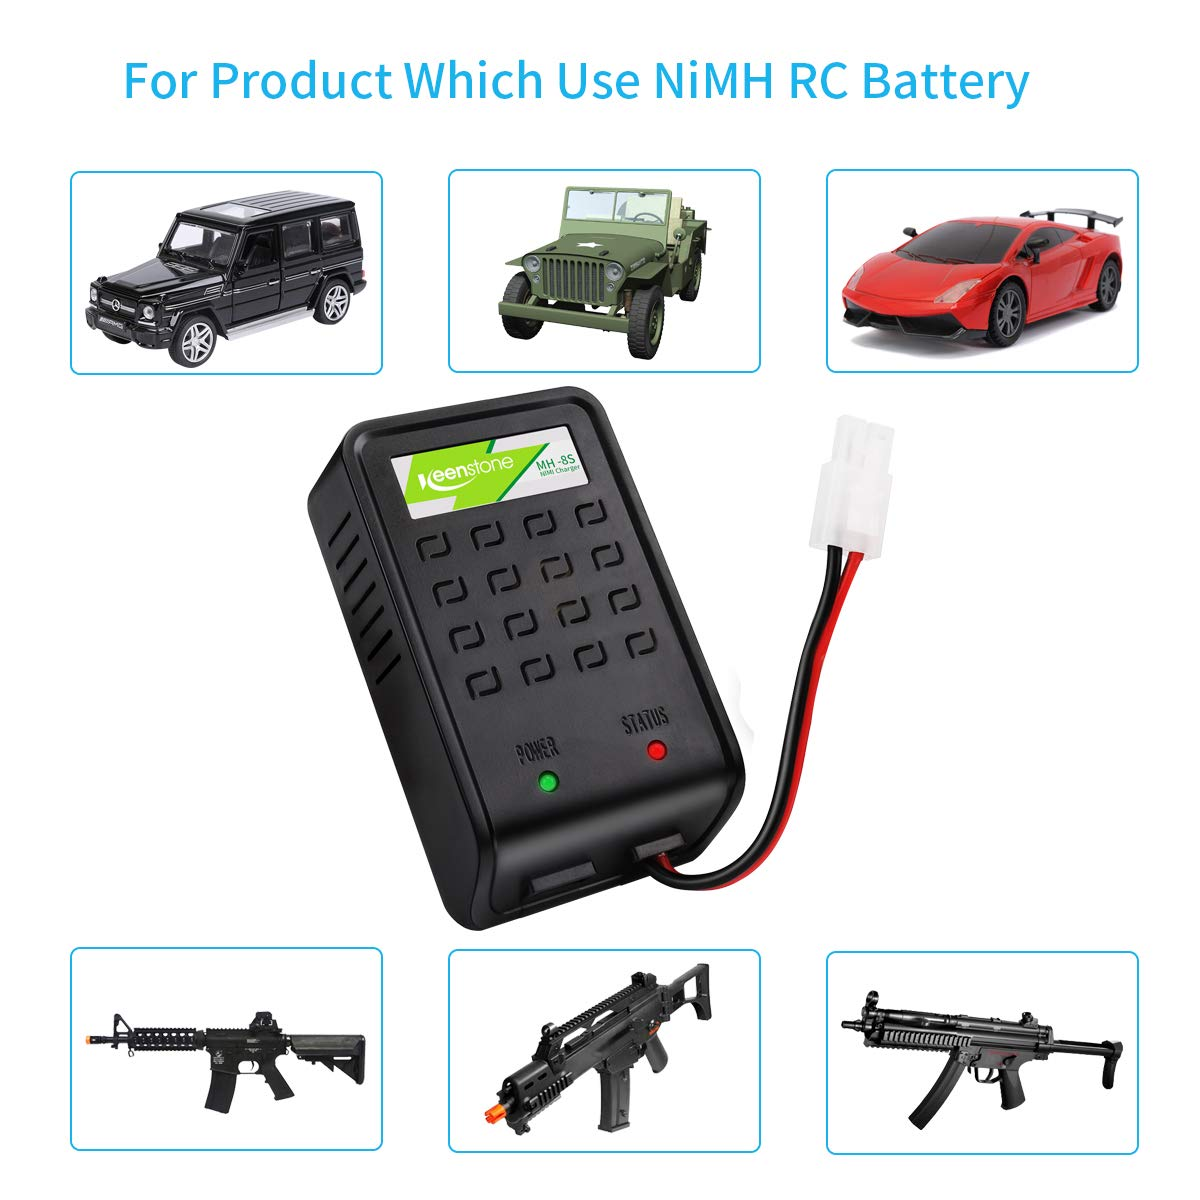 Keenstone Airsoft Chargeur Batteries avec Prise Mini Tamiya et Adaptateur Standard Tamiya pour Batteries NiMH 1-8s Compatible - Chargeur Rapide 1A pour Batteries Airsoft 1.2 V 2.4 V 3.6 V 4.8 V 6 V 7.2 V 8.4 V 9.6 V